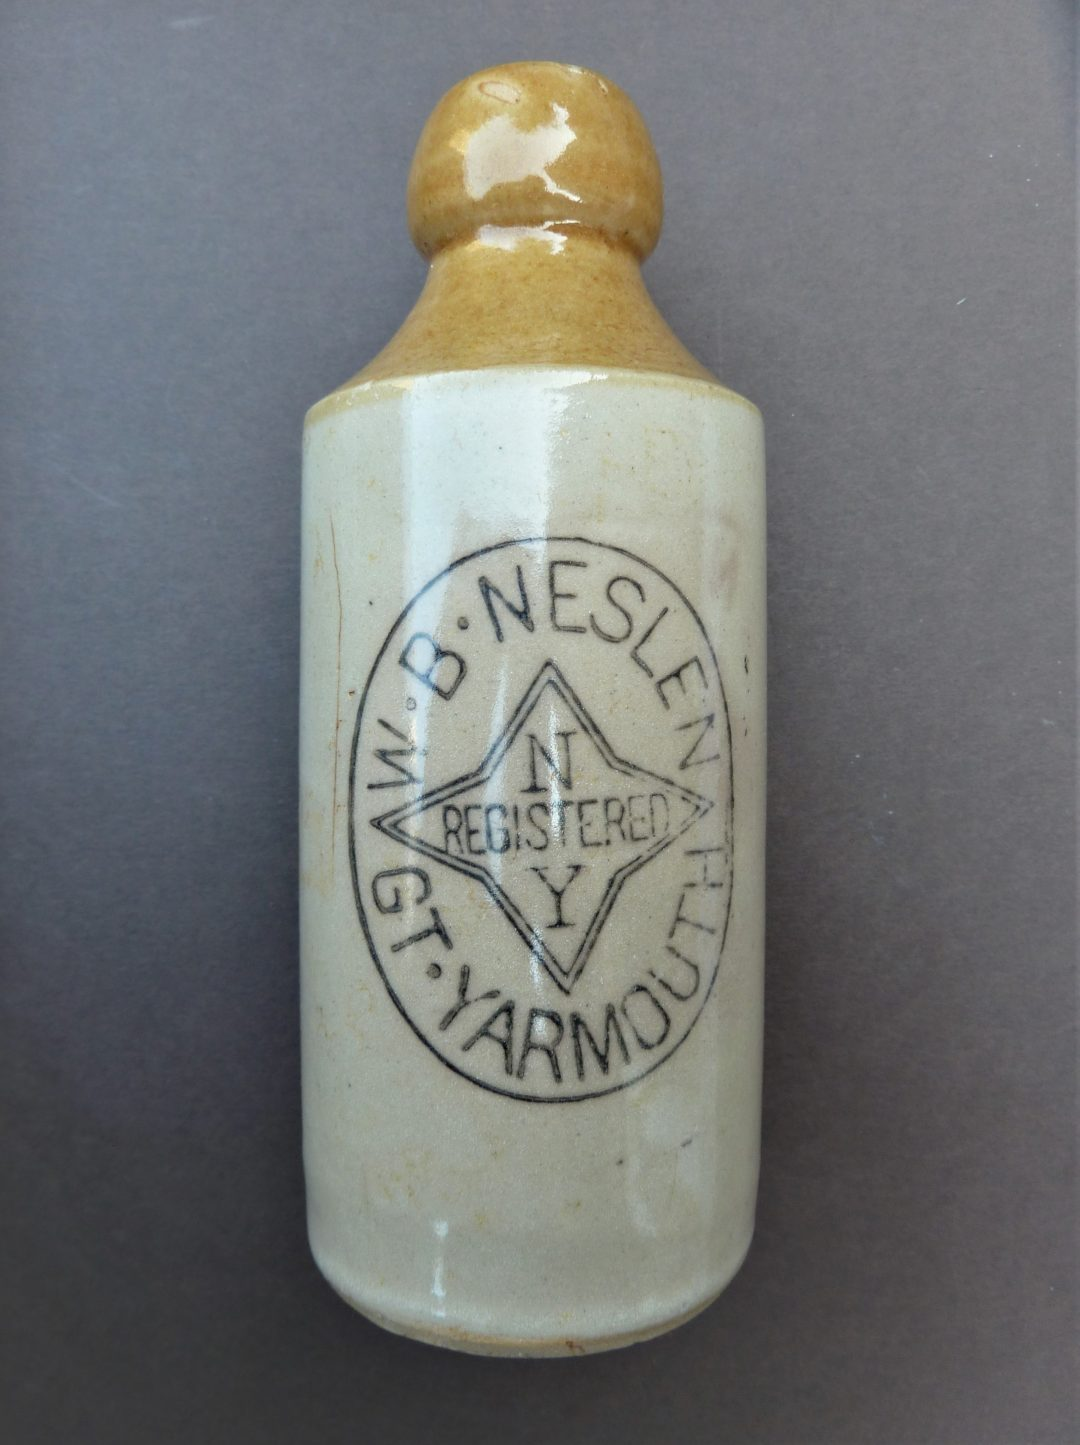 Neslen ginger beer bottle